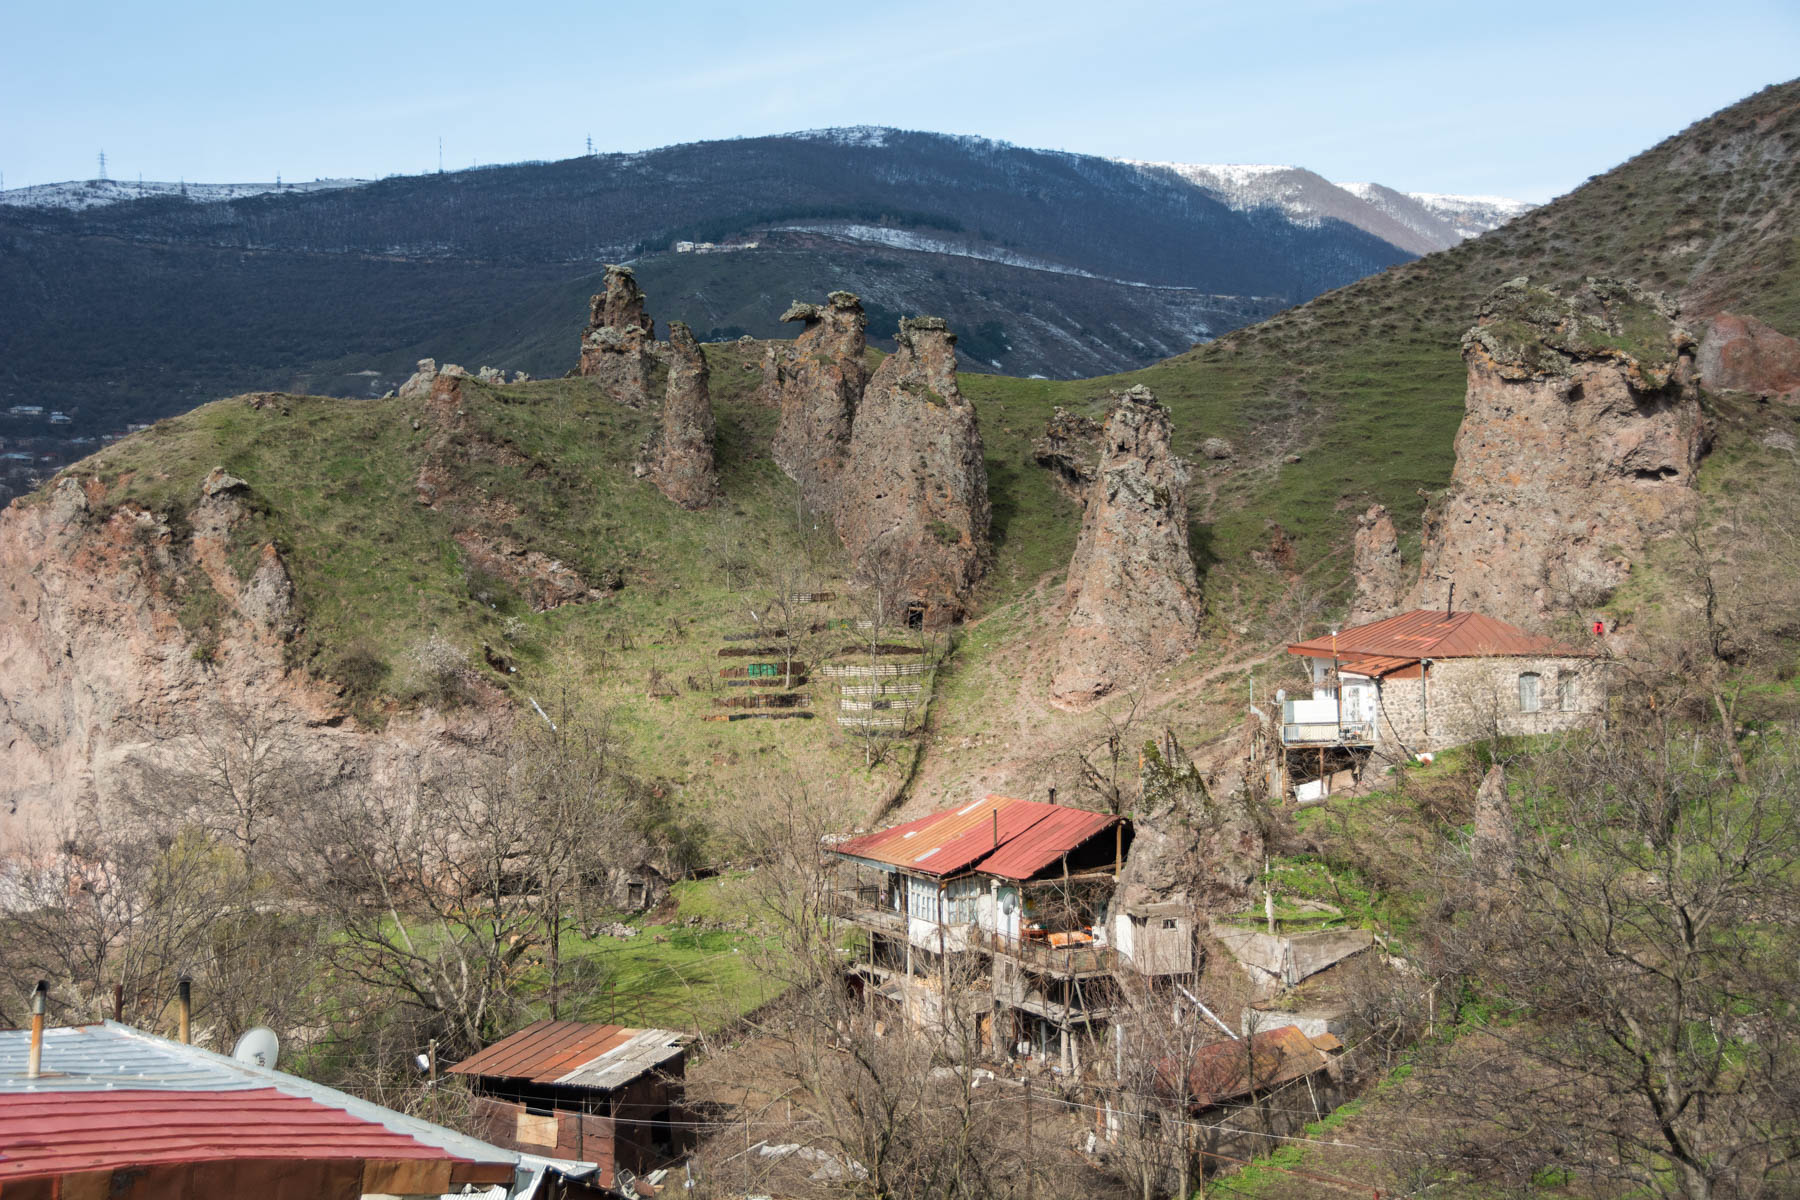 How to get to Tatev from Goris, Armenia - Houses built next to caves in the rocky spires of Goris, Armenia